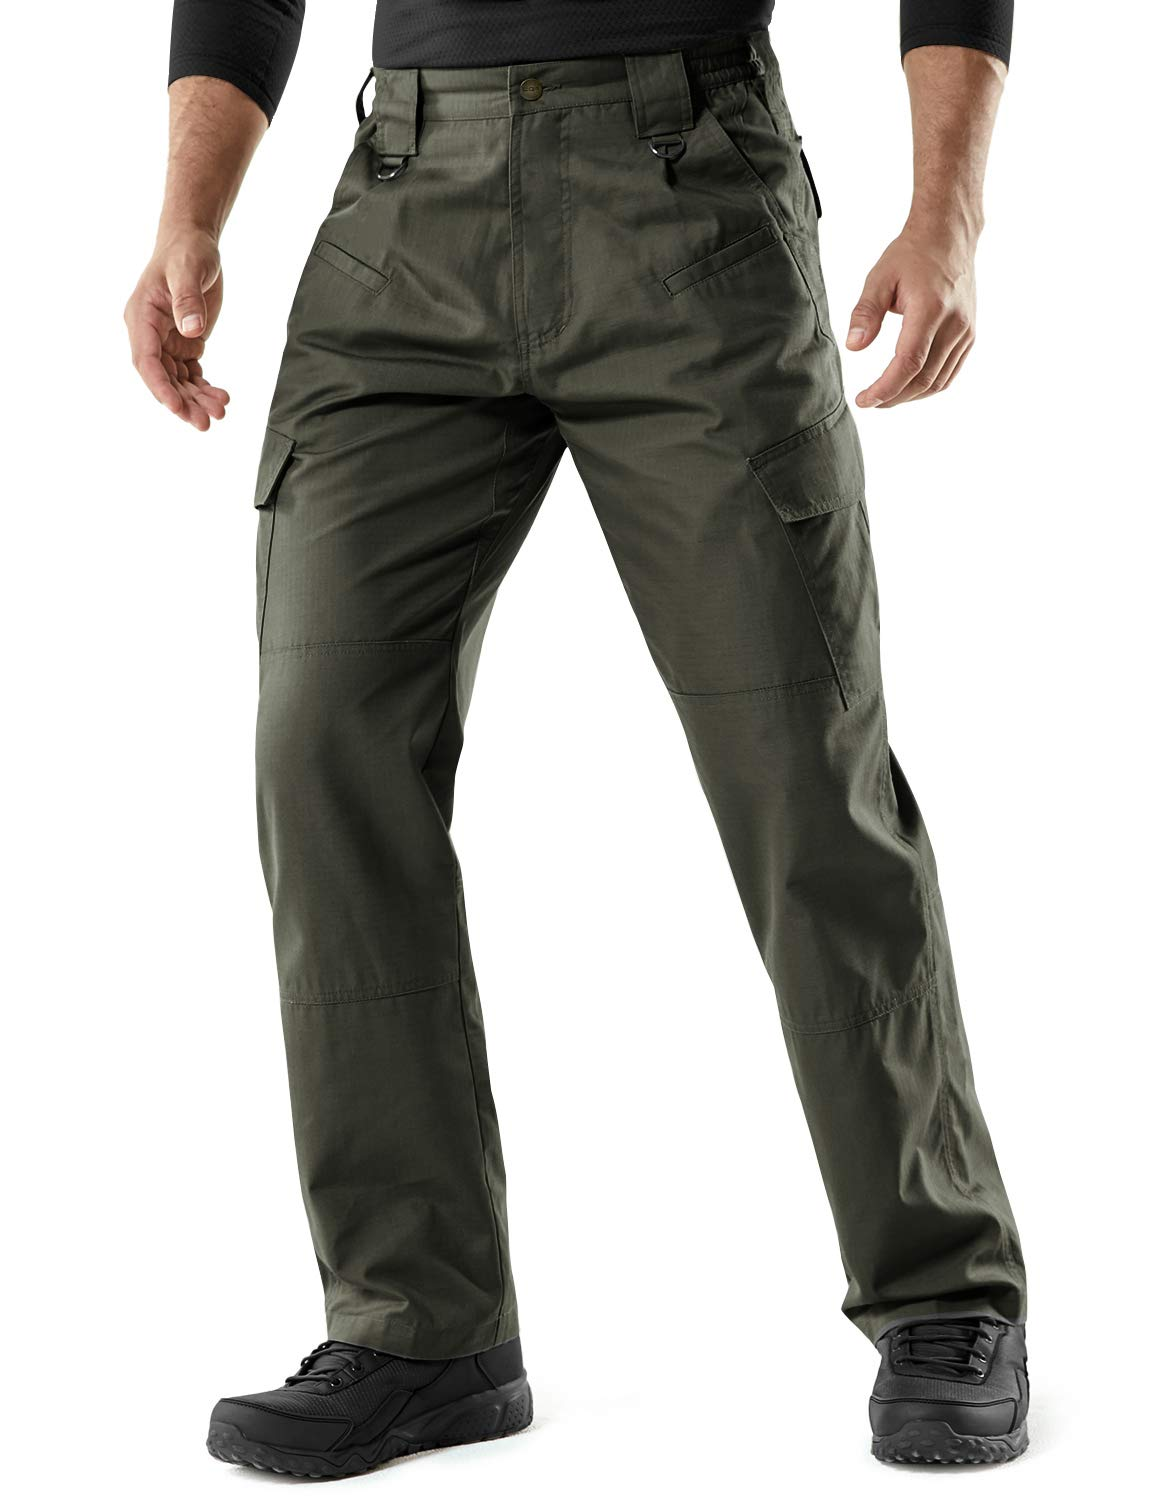 Work Outdoor Pants CQR Mens Convertible Cargo Pants Zip Off Lightweight Stretch UPF 50 Water Repellent Hiking Pants